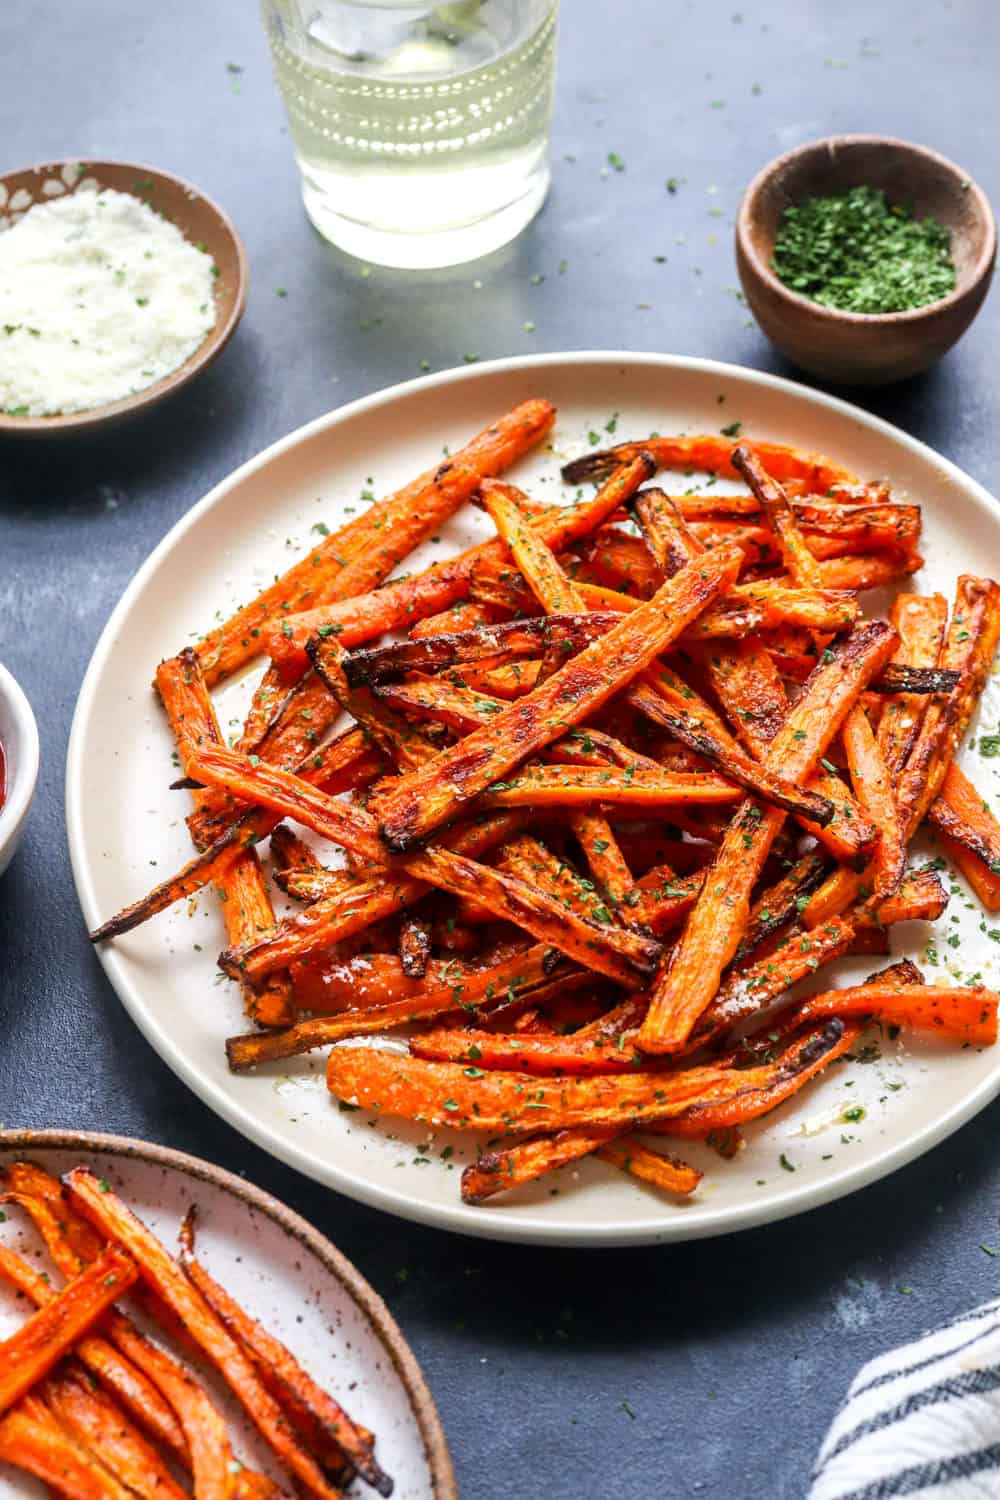 crispy fried carrots on a round plate with shredded parmesan cheese in a bowl next to it and a glass of wine in back of it.